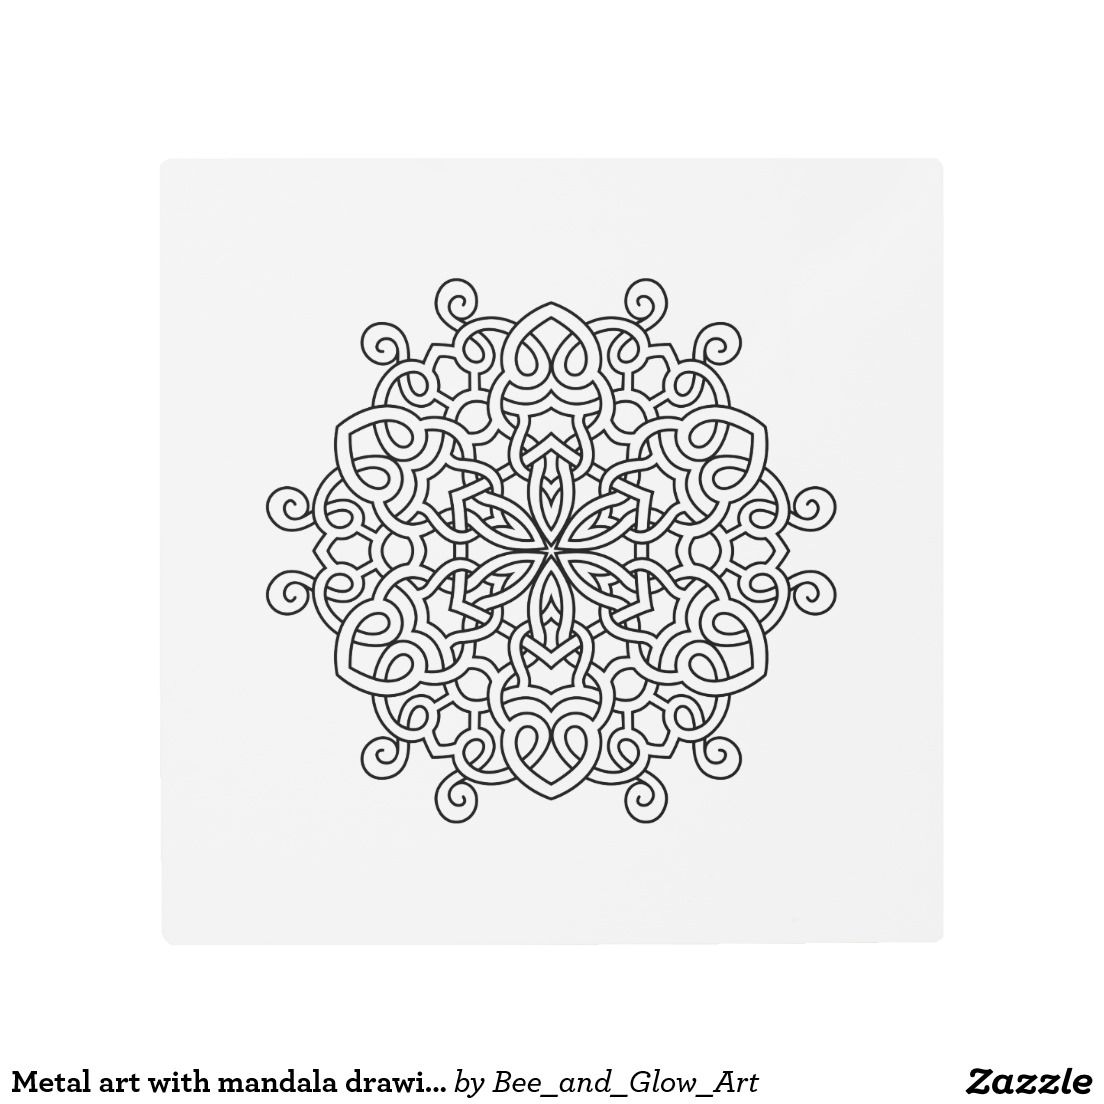 Metal art with mandala drawing